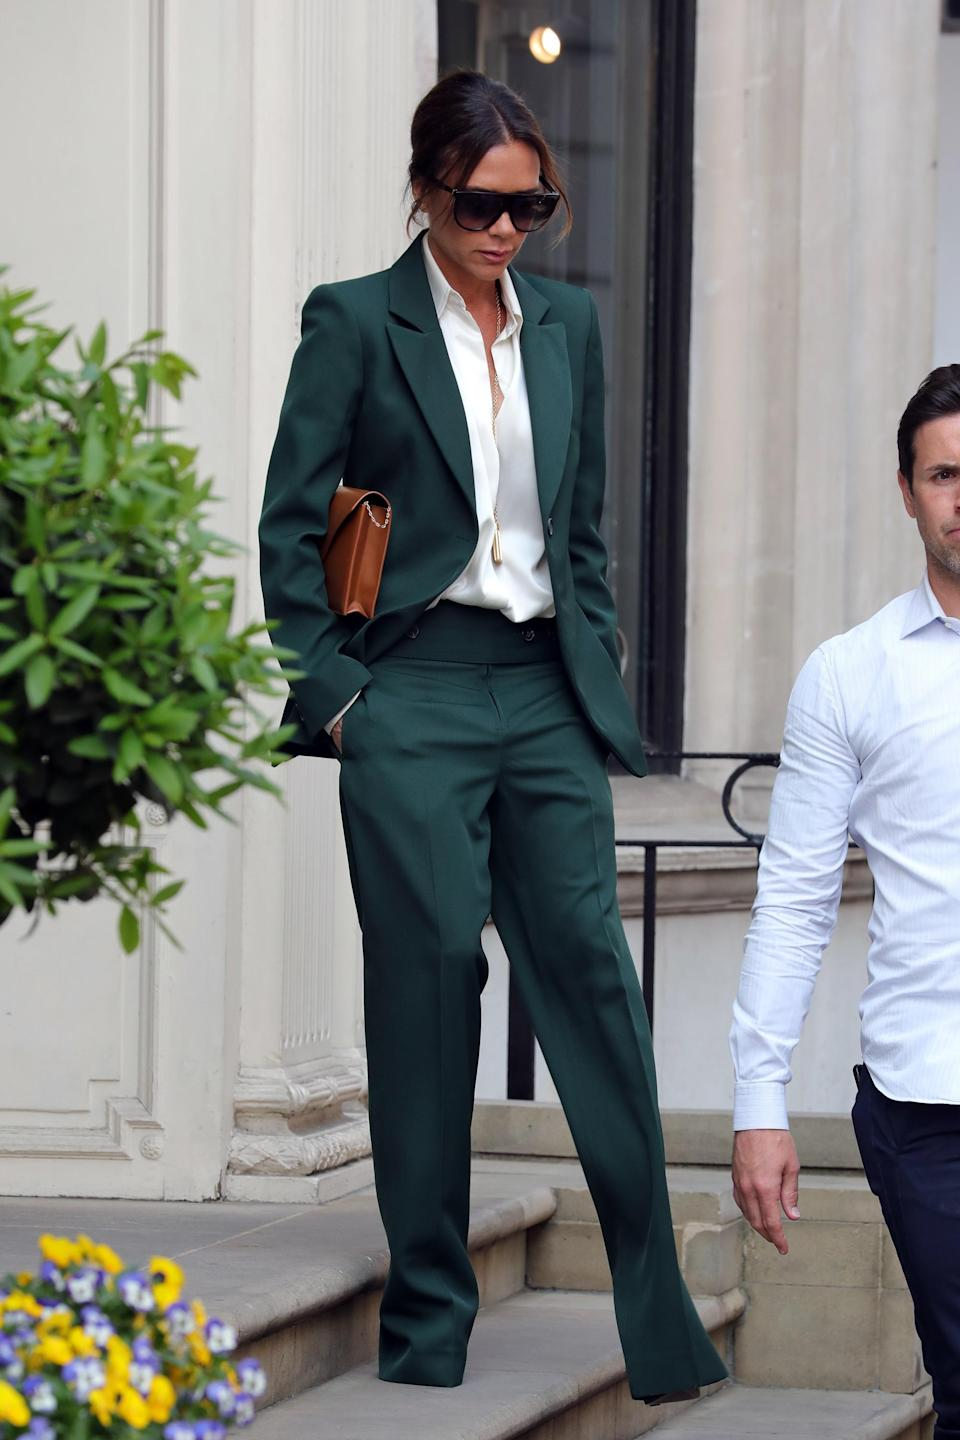 <p>VB looked her usually chic self wearing a forest green suit with a white shirt, photographed for the first time since the royal wedding. <em>[Photo: Getty]</em> </p>